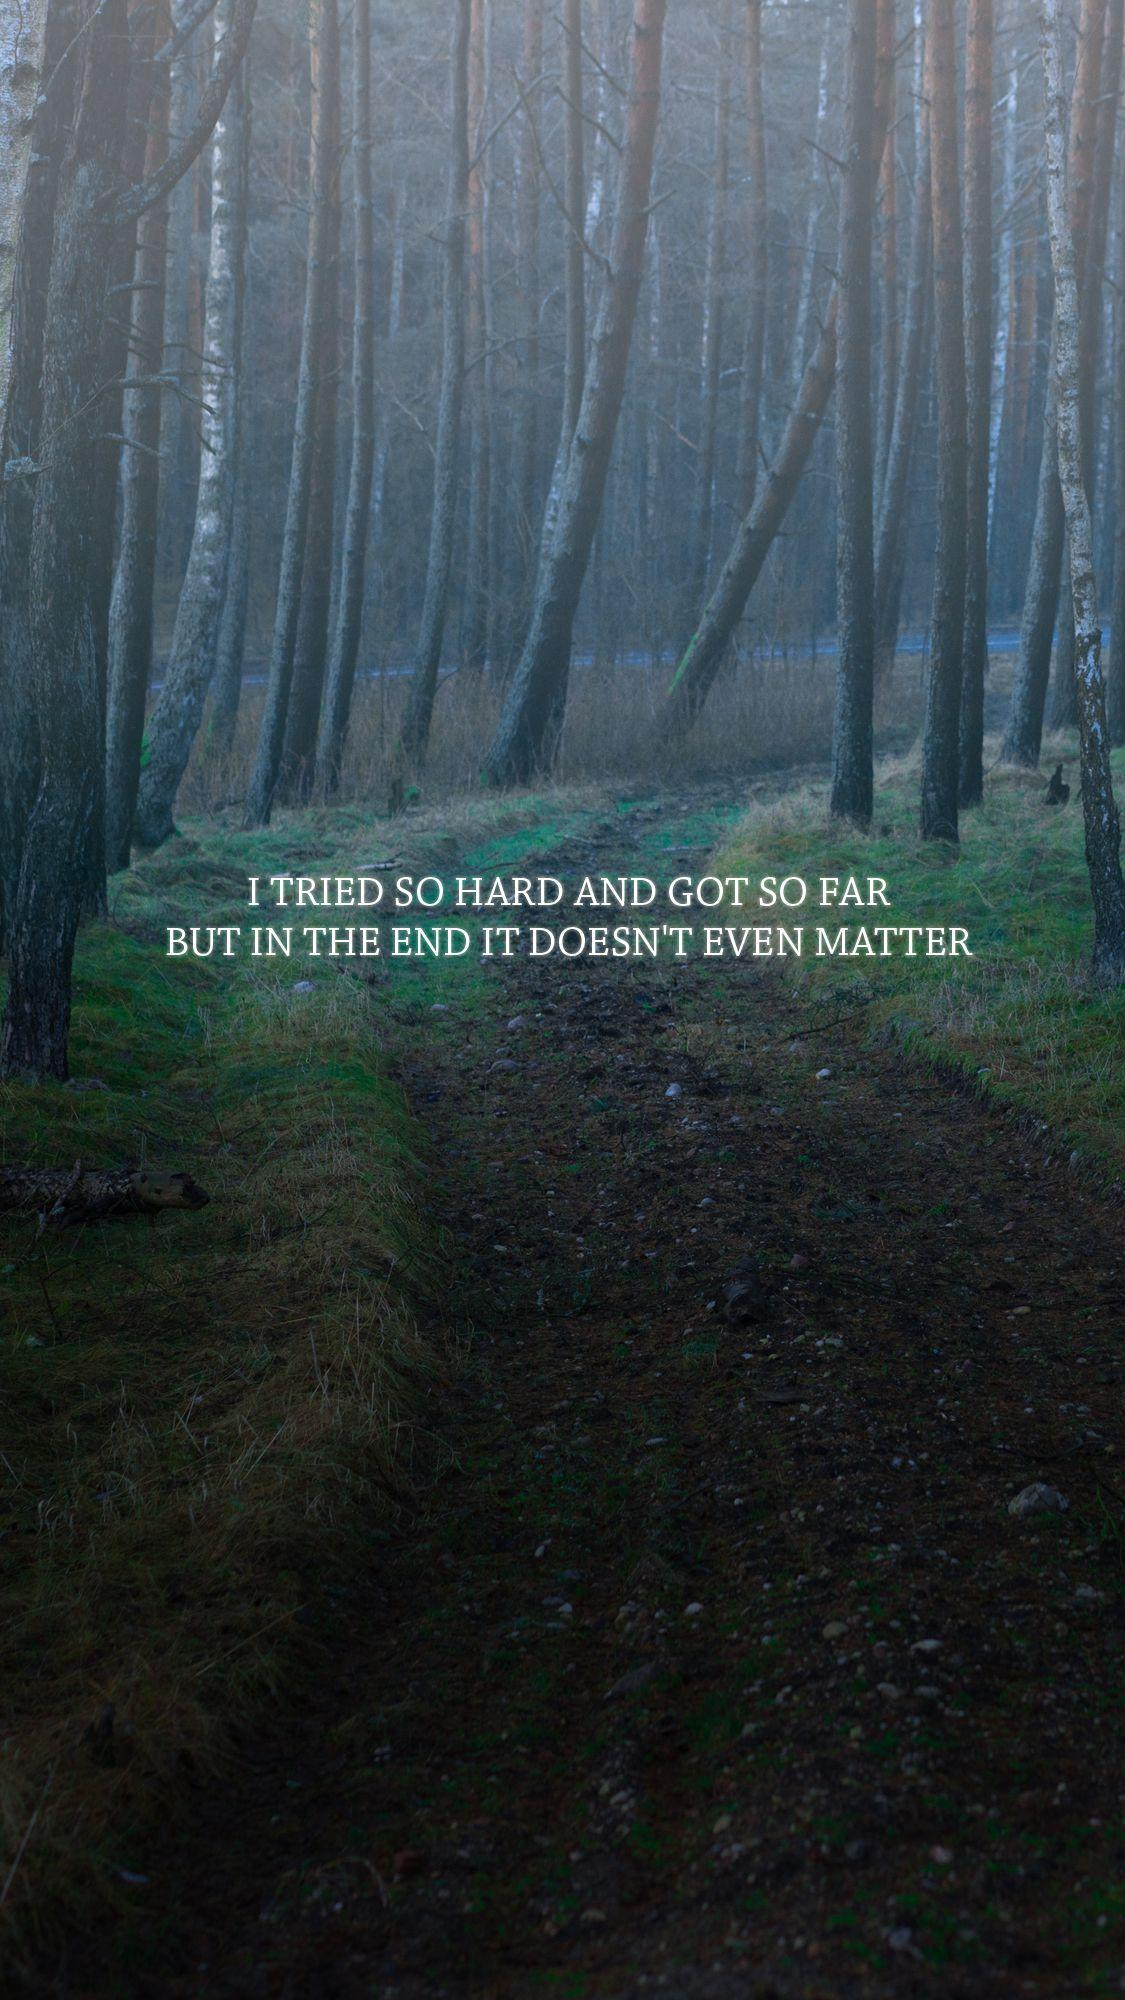 Linkin Park Lyrics Wallpapers Wallpaper Cave